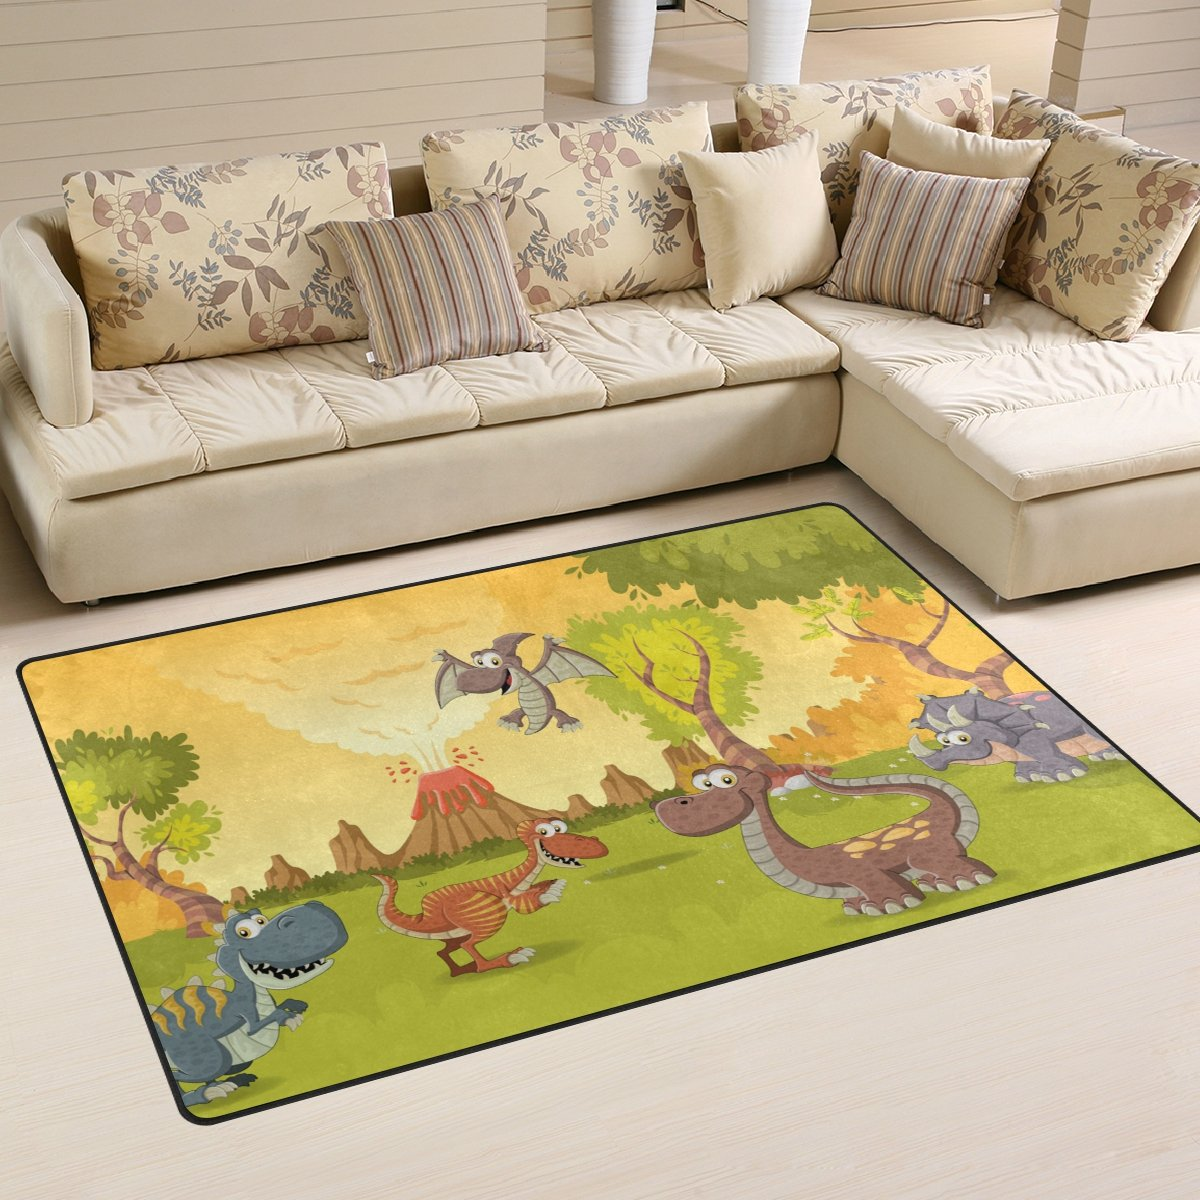 WellLee Area Rug,Forest Volcano Funny Cartoon Dinosaurs Prehistoric Floor Rug Non-Slip Doormat for Living Dining Dorm Room Bedroom Decor 31x20 inch